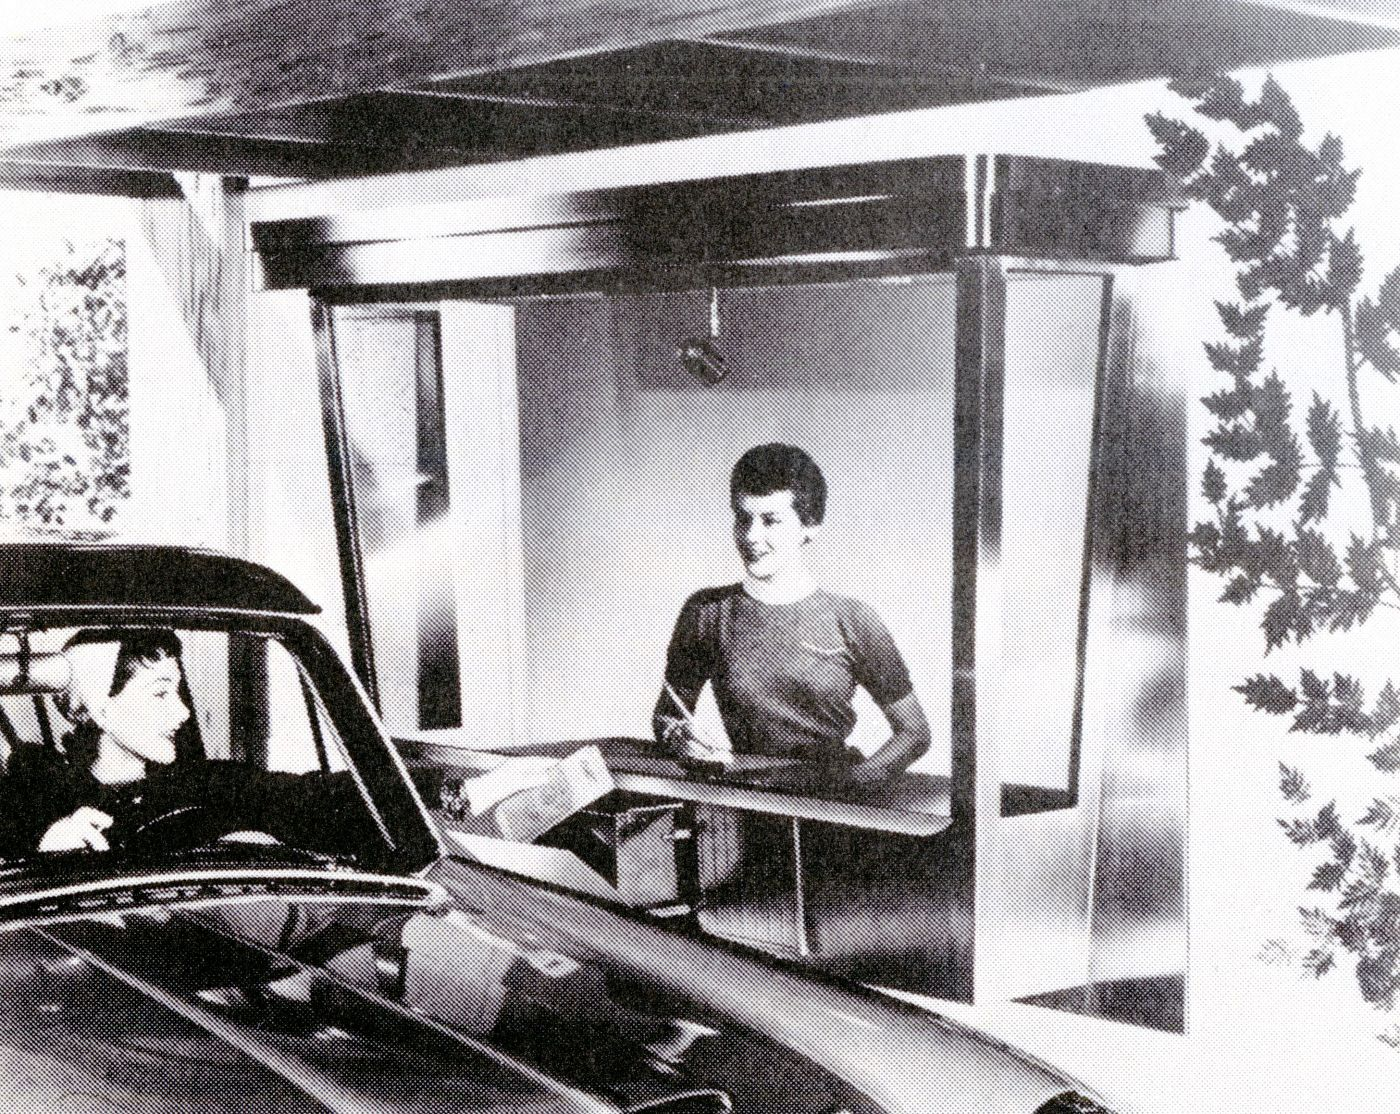 Black and white photograph of an elegant young woman sitting in her car, handing money through the window to a smiling, modern-looking young woman working at a drive-through service counter.